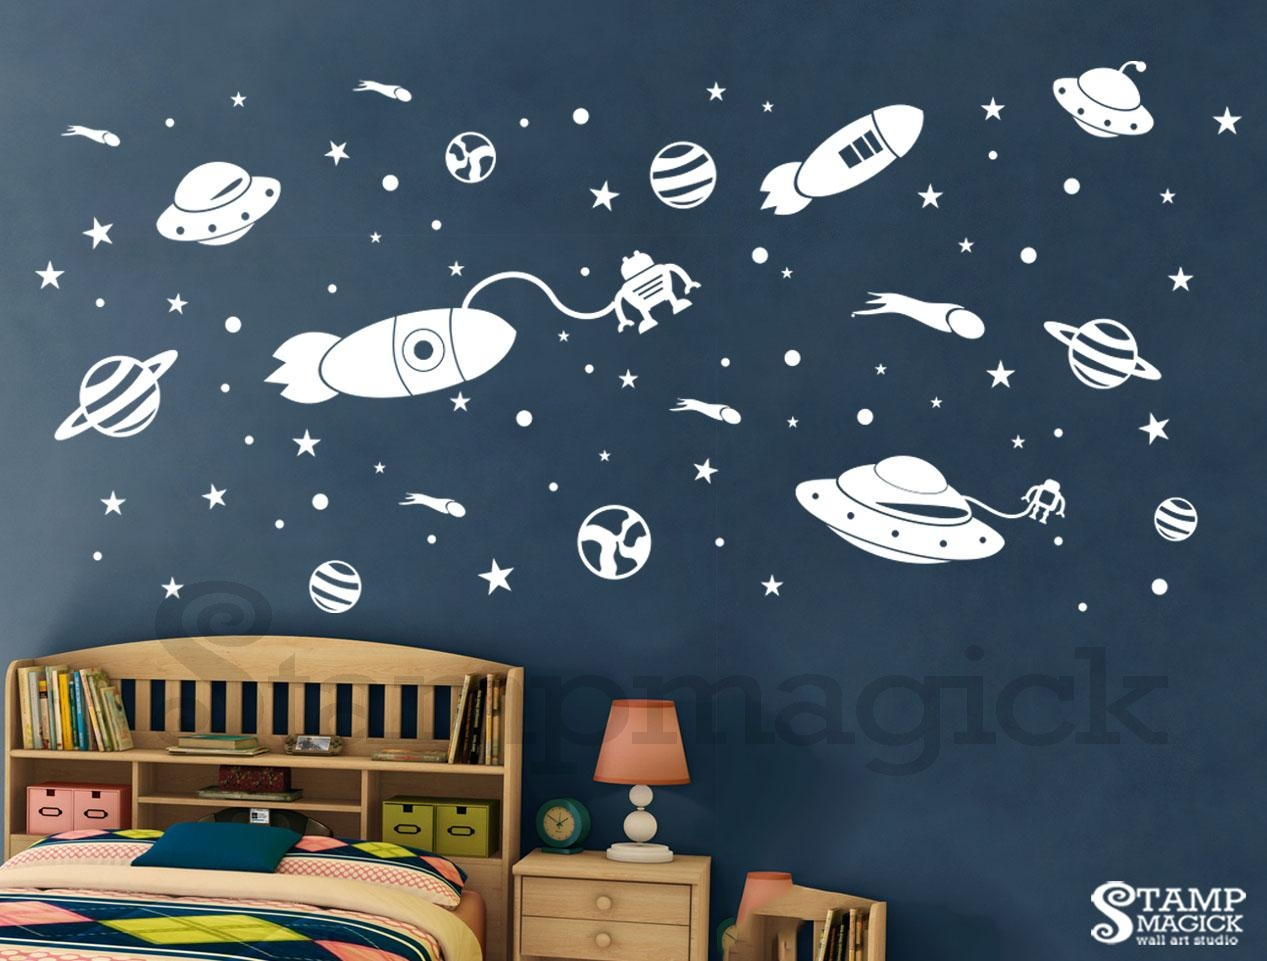 Outer Space Wall Decal, K321 – Stampmagick Wall Decals In Outer Space Wall Art (View 20 of 20)